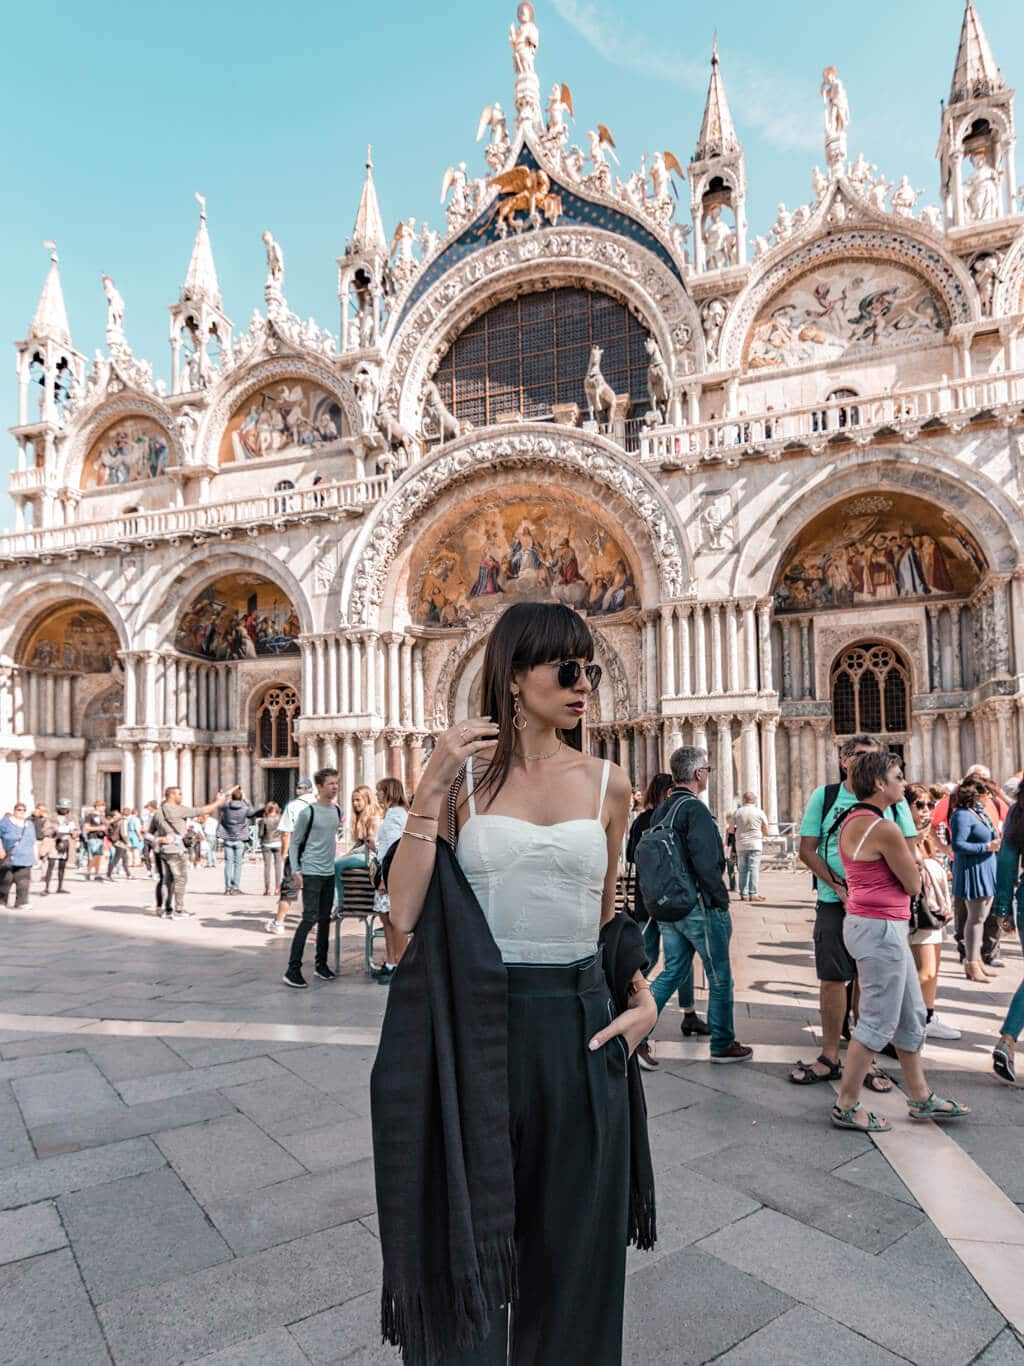 Venice Travel Guide - things to do in Venice, including food recommendations and tips